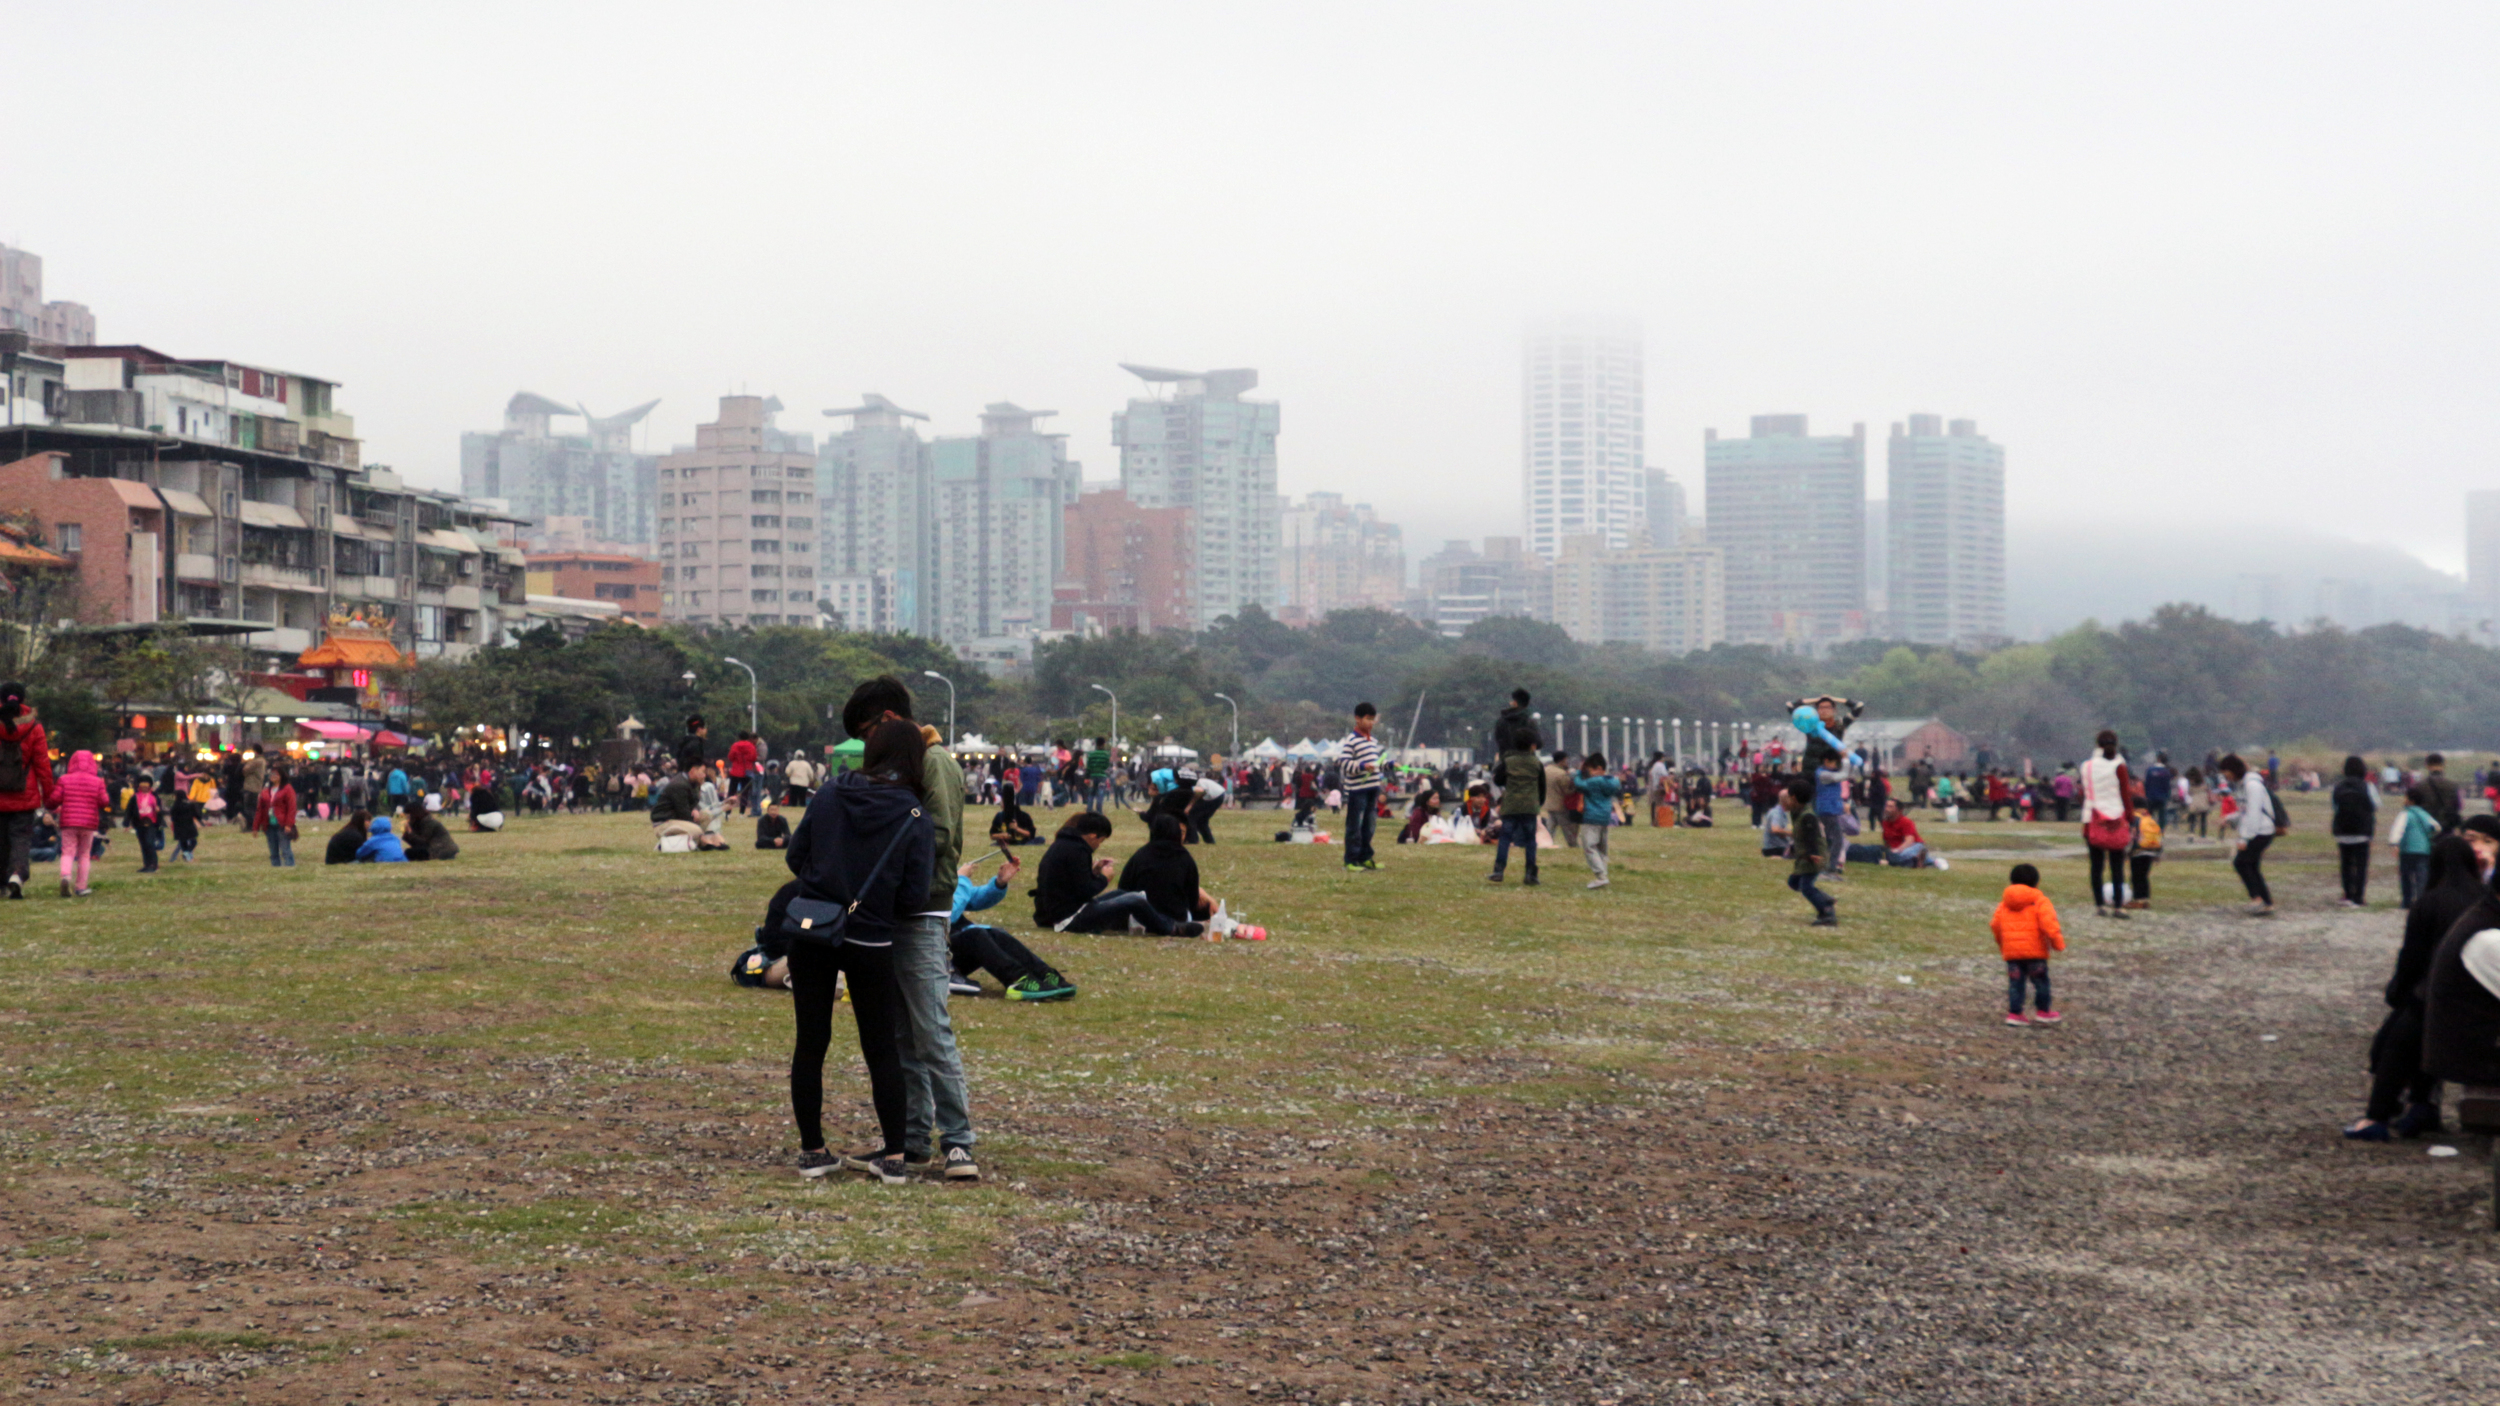 The river bank also has a park area where couples, families, and friends enjoy and relax.  It was a bit cloudy that day but there were still plenty of people out and about.